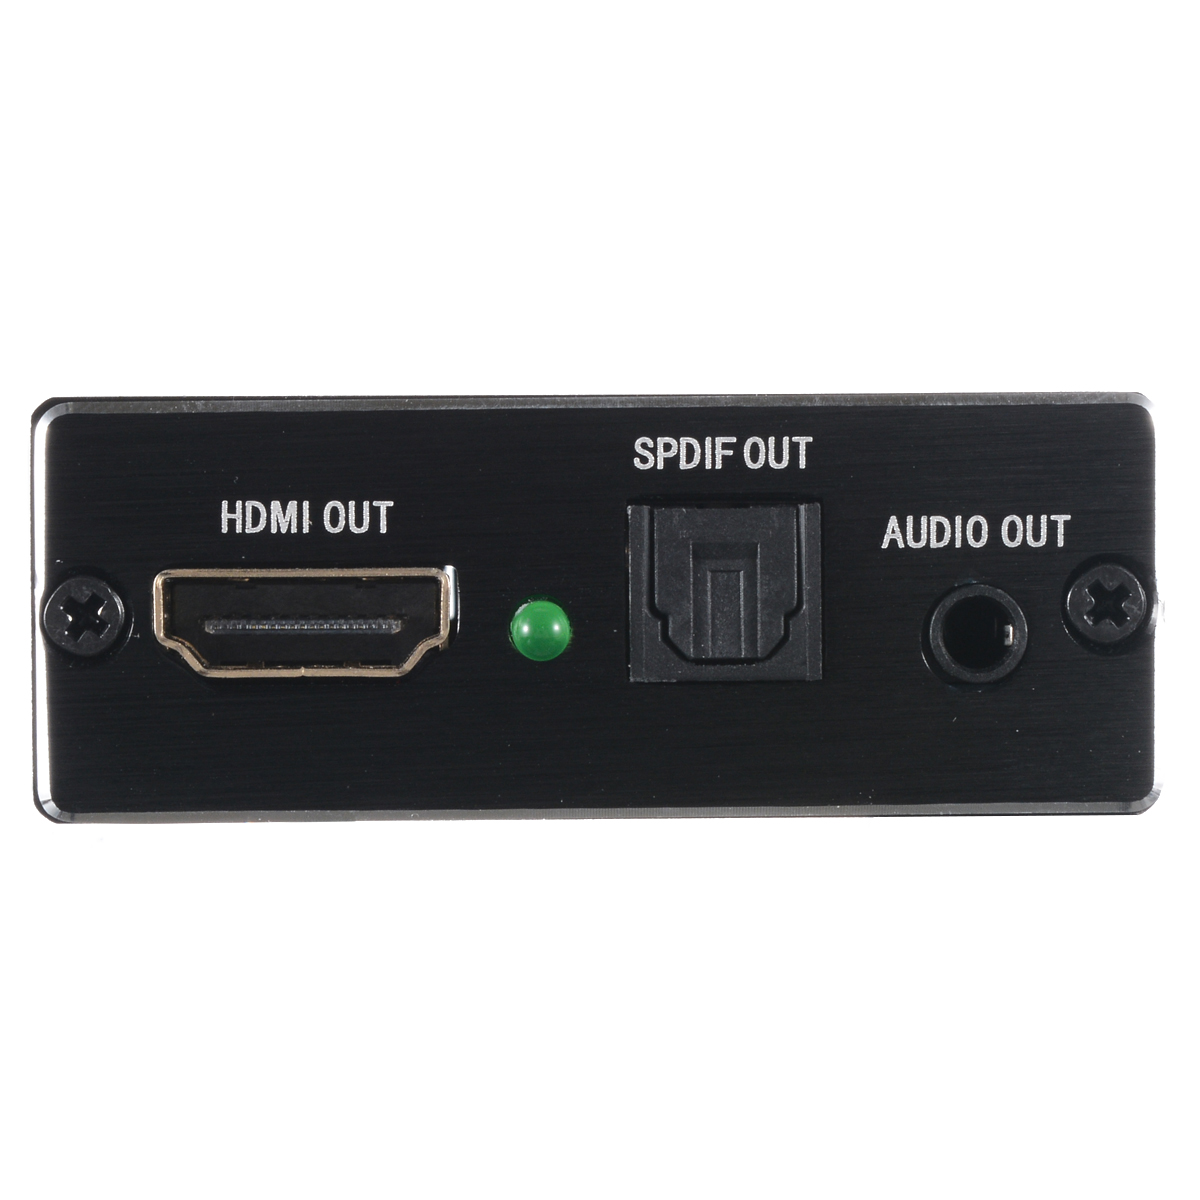 Onsale 1pc HDMI Telvision Splitter 4Kx2K Black HDMI To HDMI Audio Optical TOSLINK SPDIF Extractor Adapter